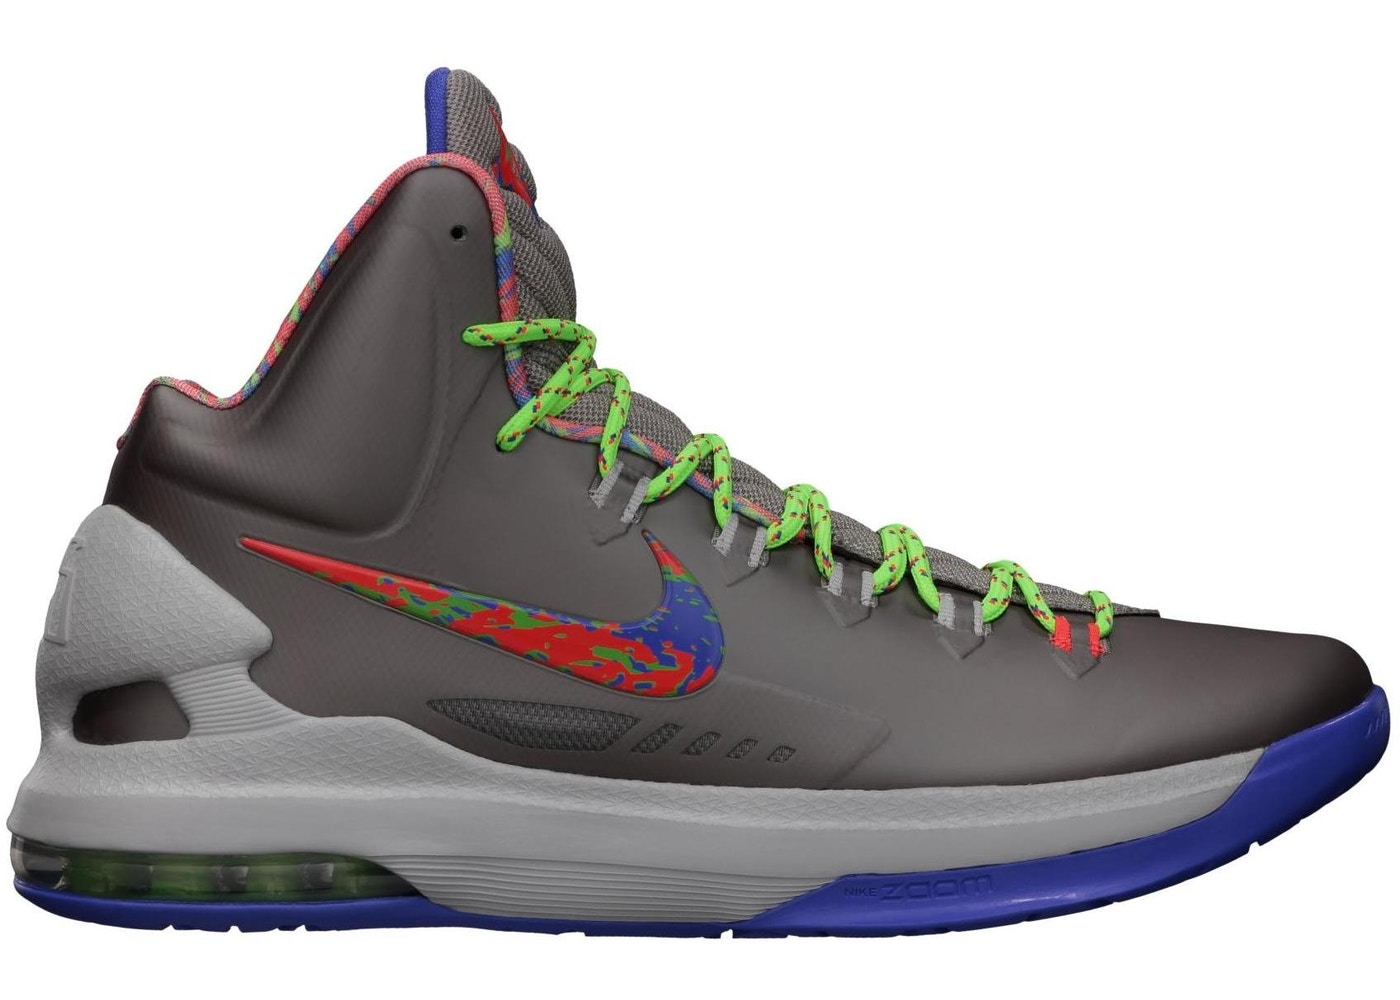 premium selection f5913 79552 Buy Nike KD Shoes   Deadstock Sneakers